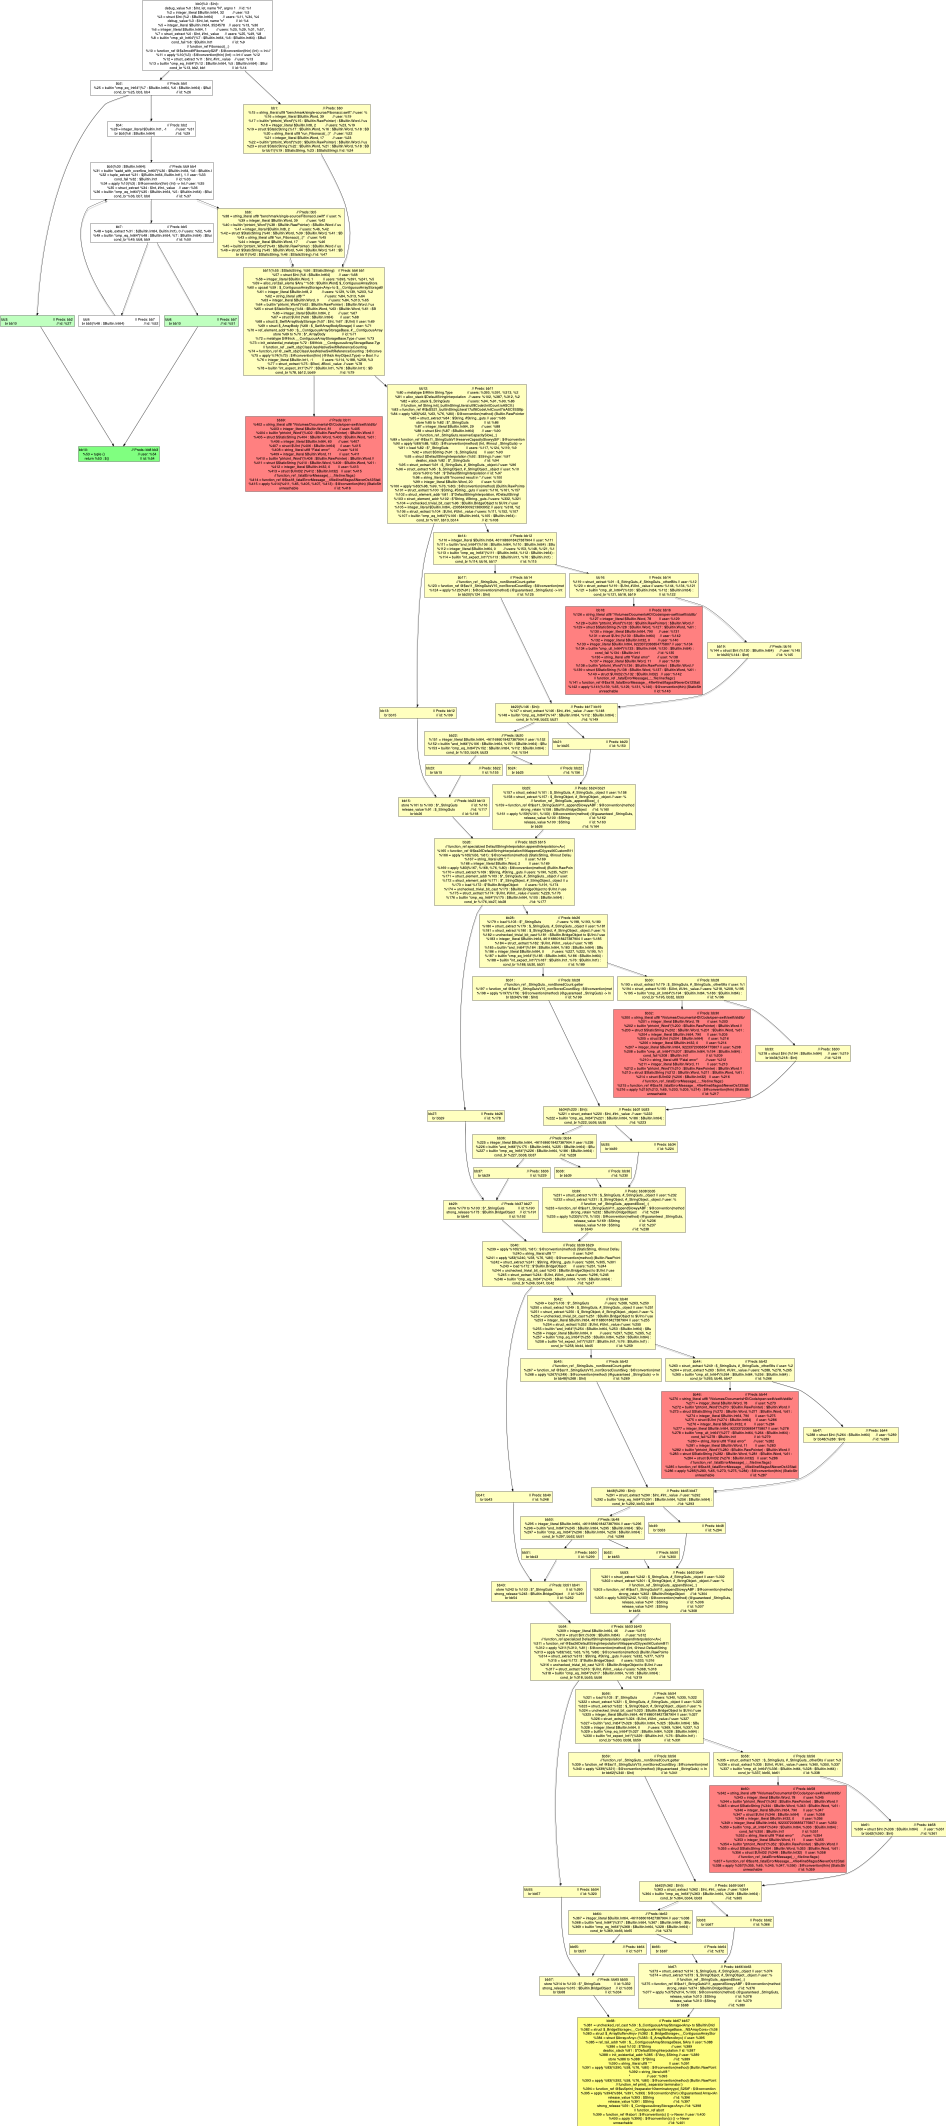 Incredibly convoluted control flow graph, with almost all of the blocks in the failure path.